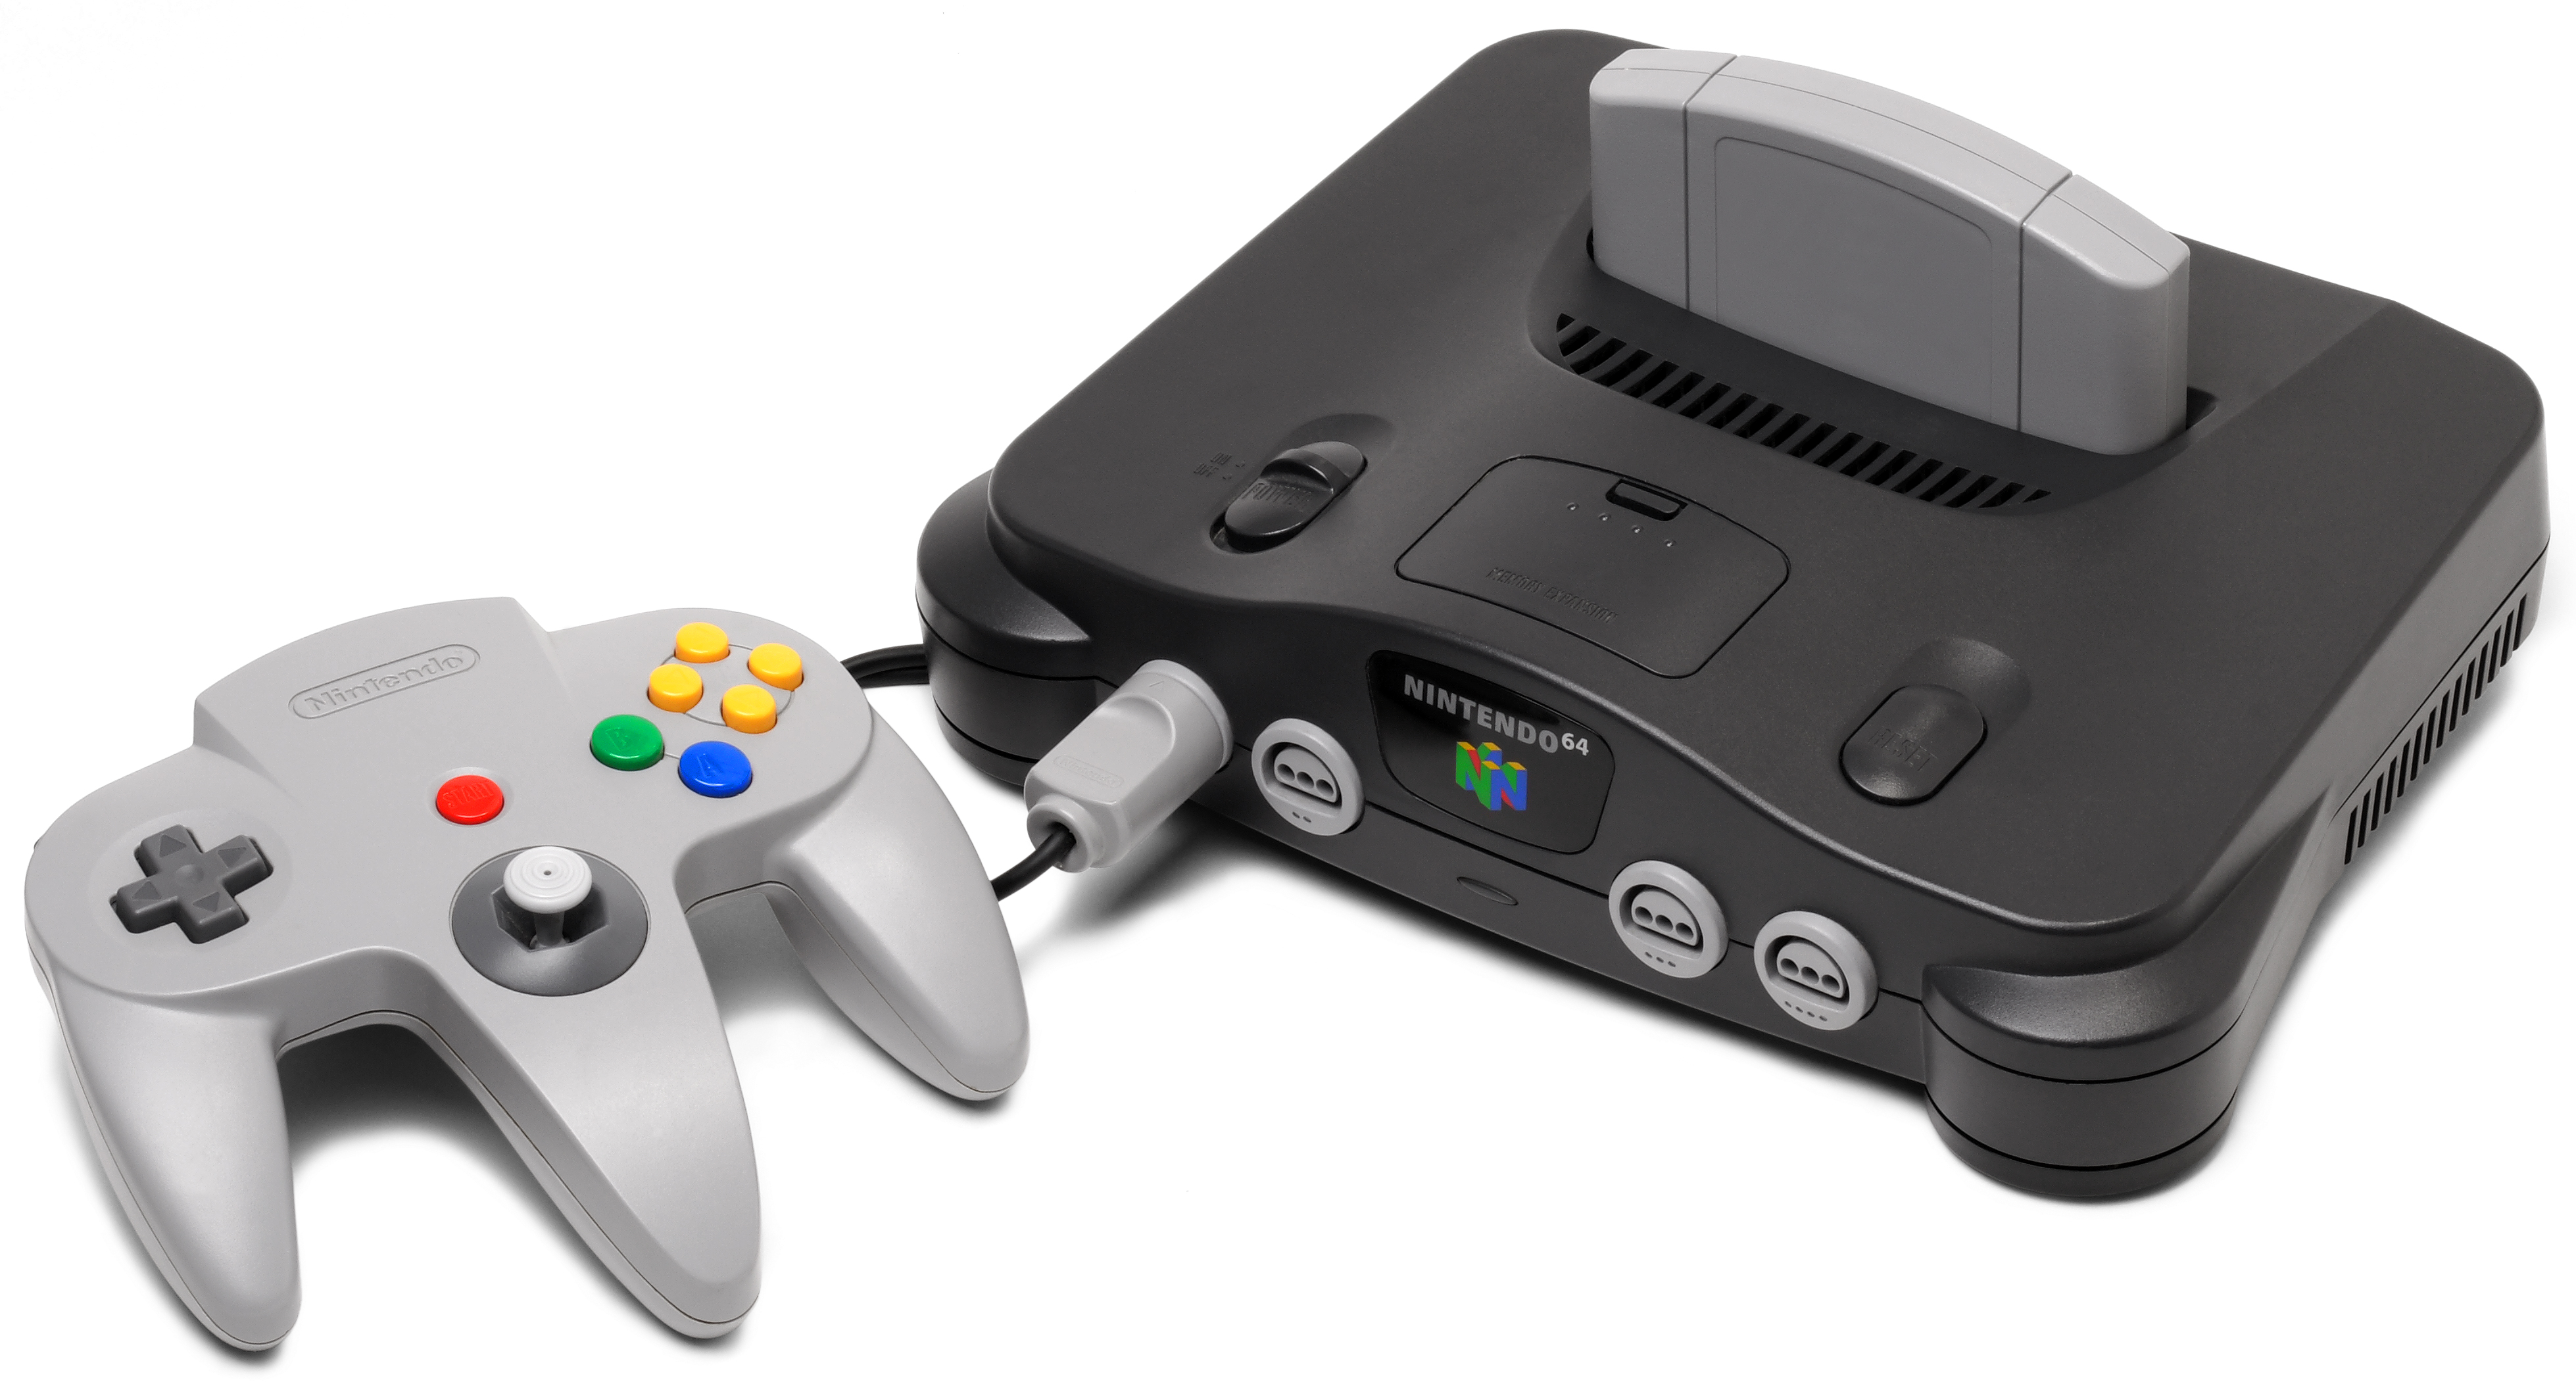 https://upload.wikimedia.org/wikipedia/commons/1/11/N64-Console-Set.jpg